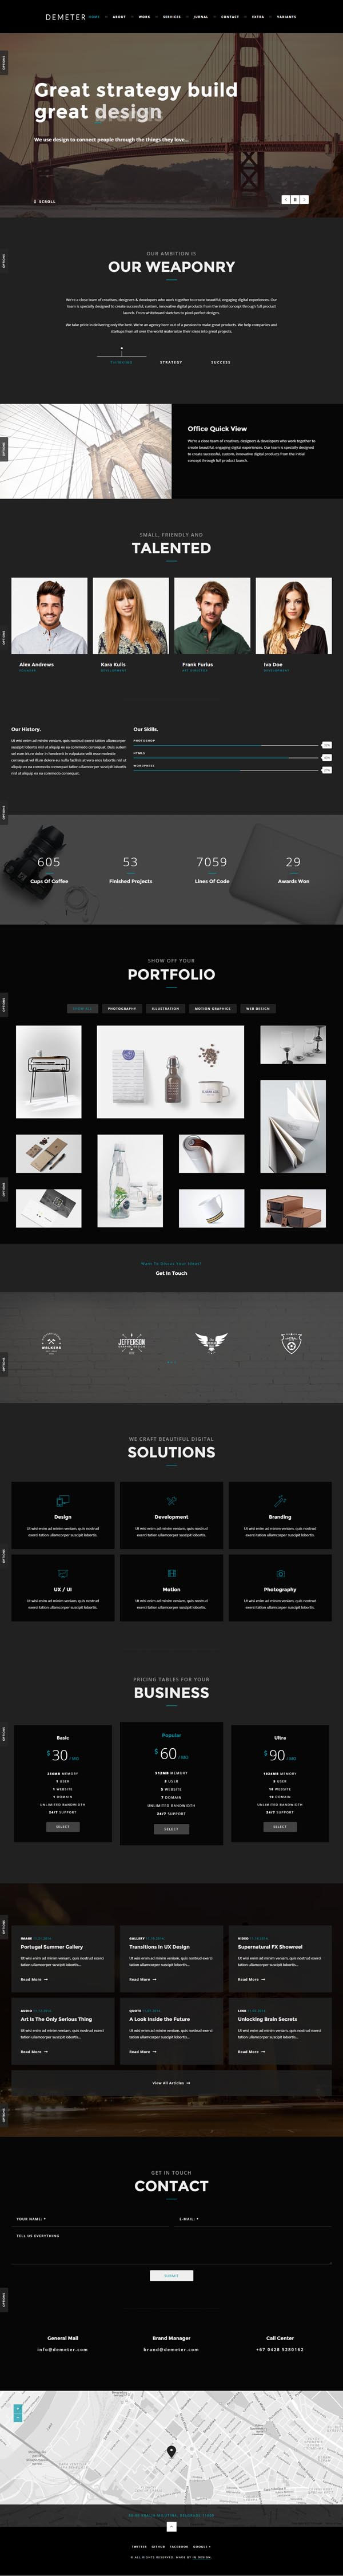 New Responsive HTML5 Website Templates | Design | Graphic Design ...